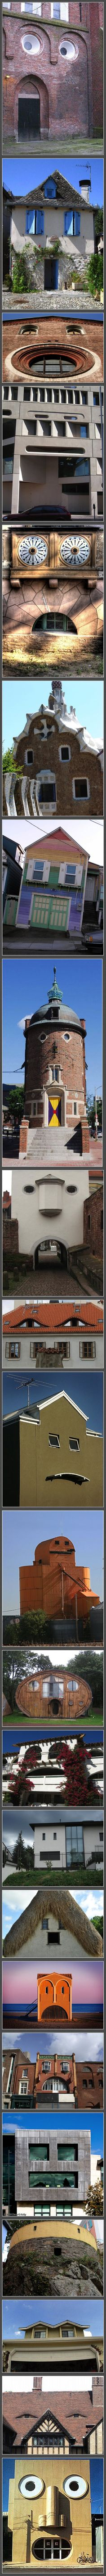 Buildings With Unintentionally Funny Faces